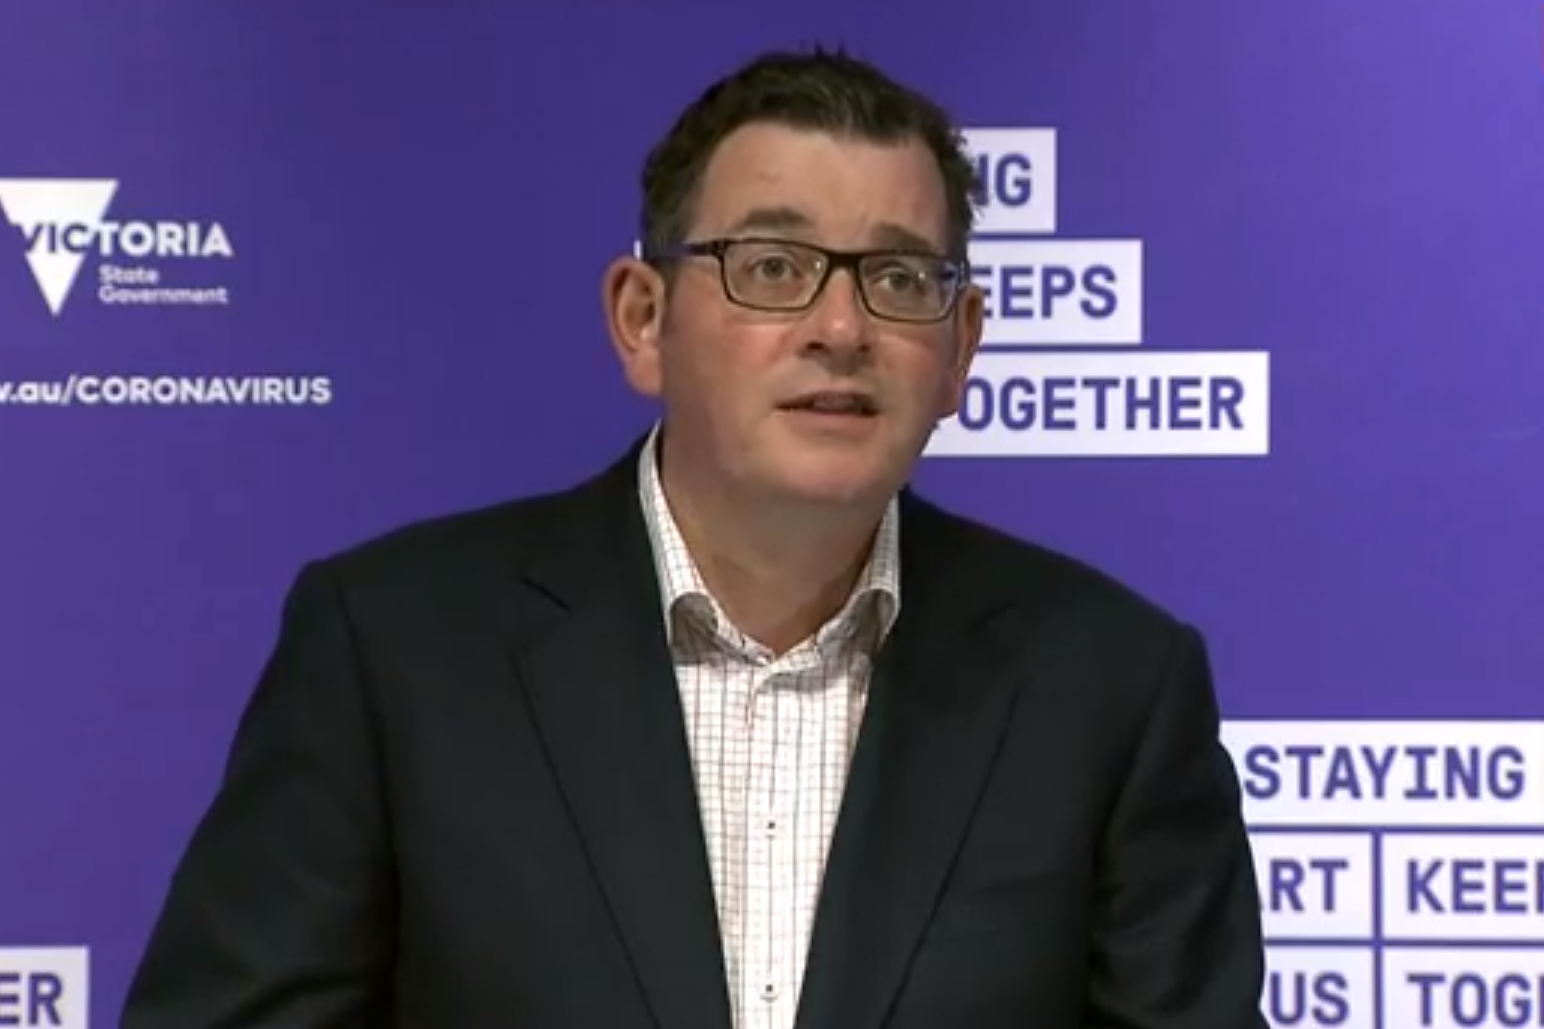 Daniel Andrews clarifies rules on 'separate spaces' in pubs, restaurants and cafes